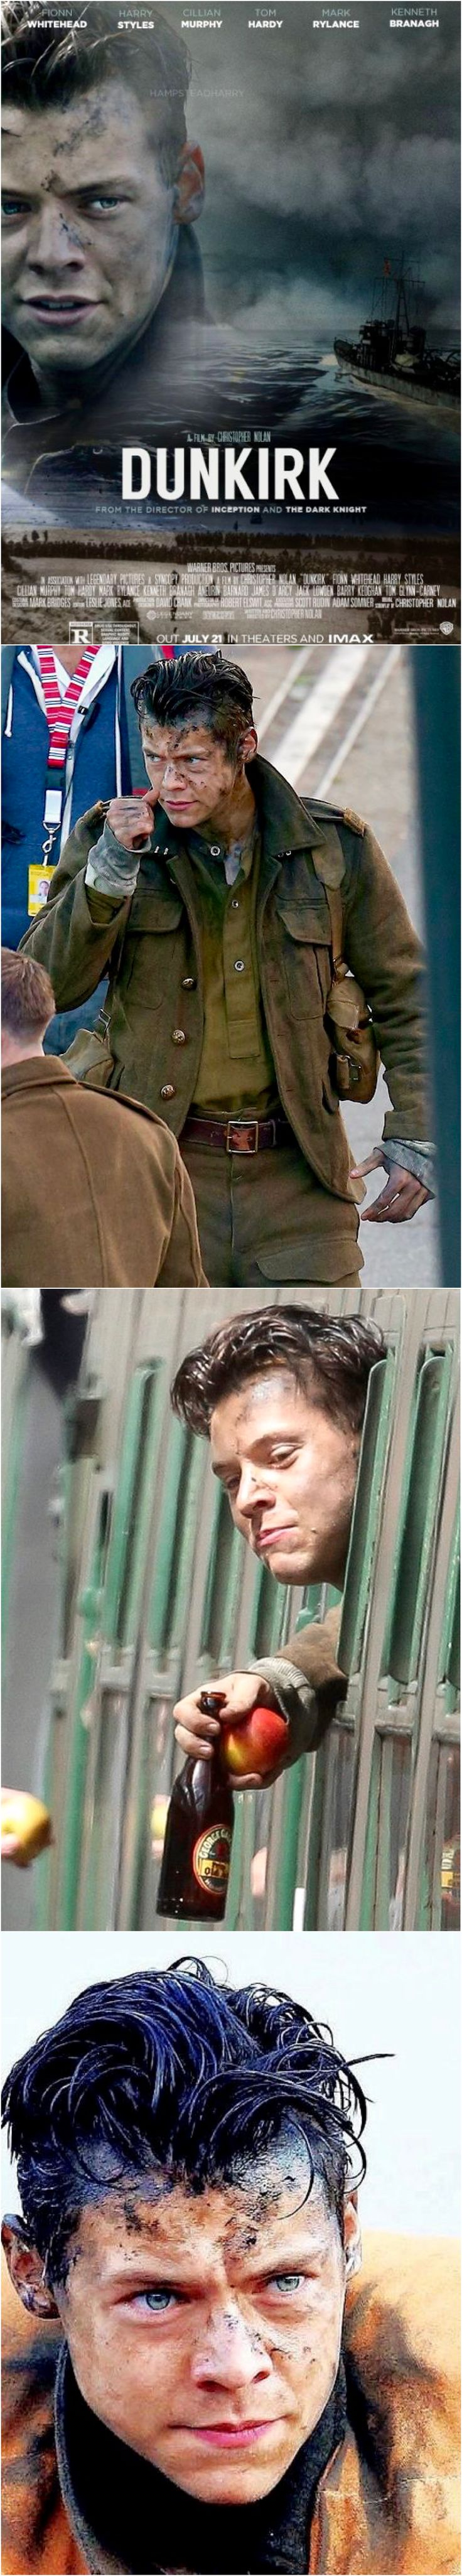 Harry Styles Megapin! Dunkirk starring Harry Styles. Opening in theatres July 21, 2017. Save or Like if you will see Dunkirk because HARRY STYLES is in it! Best Harry Pins at rickysturn/harry_styles